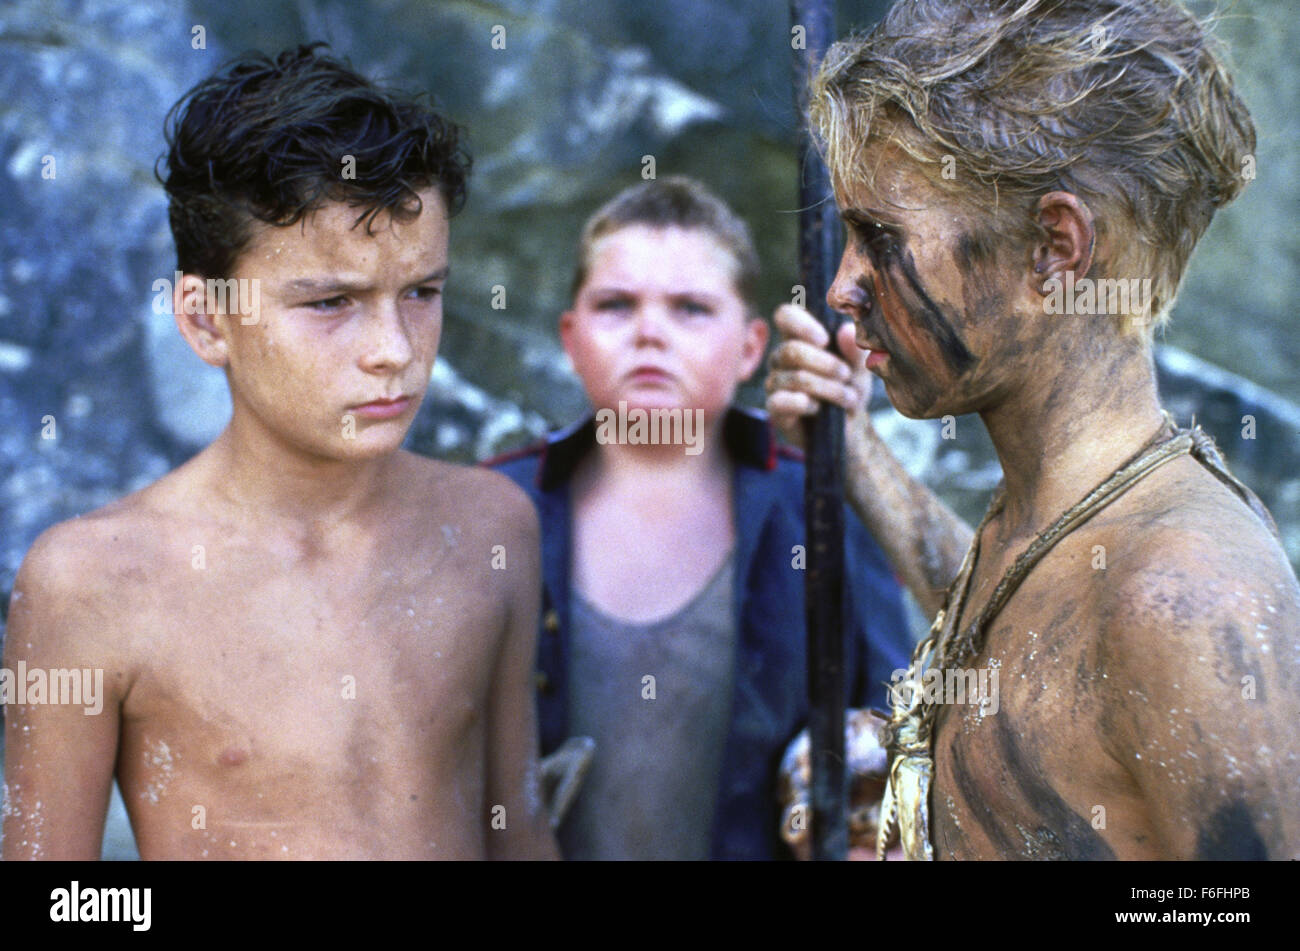 RELEASE DATE: March 16, 1990   MOVIE TITLE: Lord of the Flies   STUDIO: Nelson Entertainment   DIRECTOR: Harry Hook - Stock Image